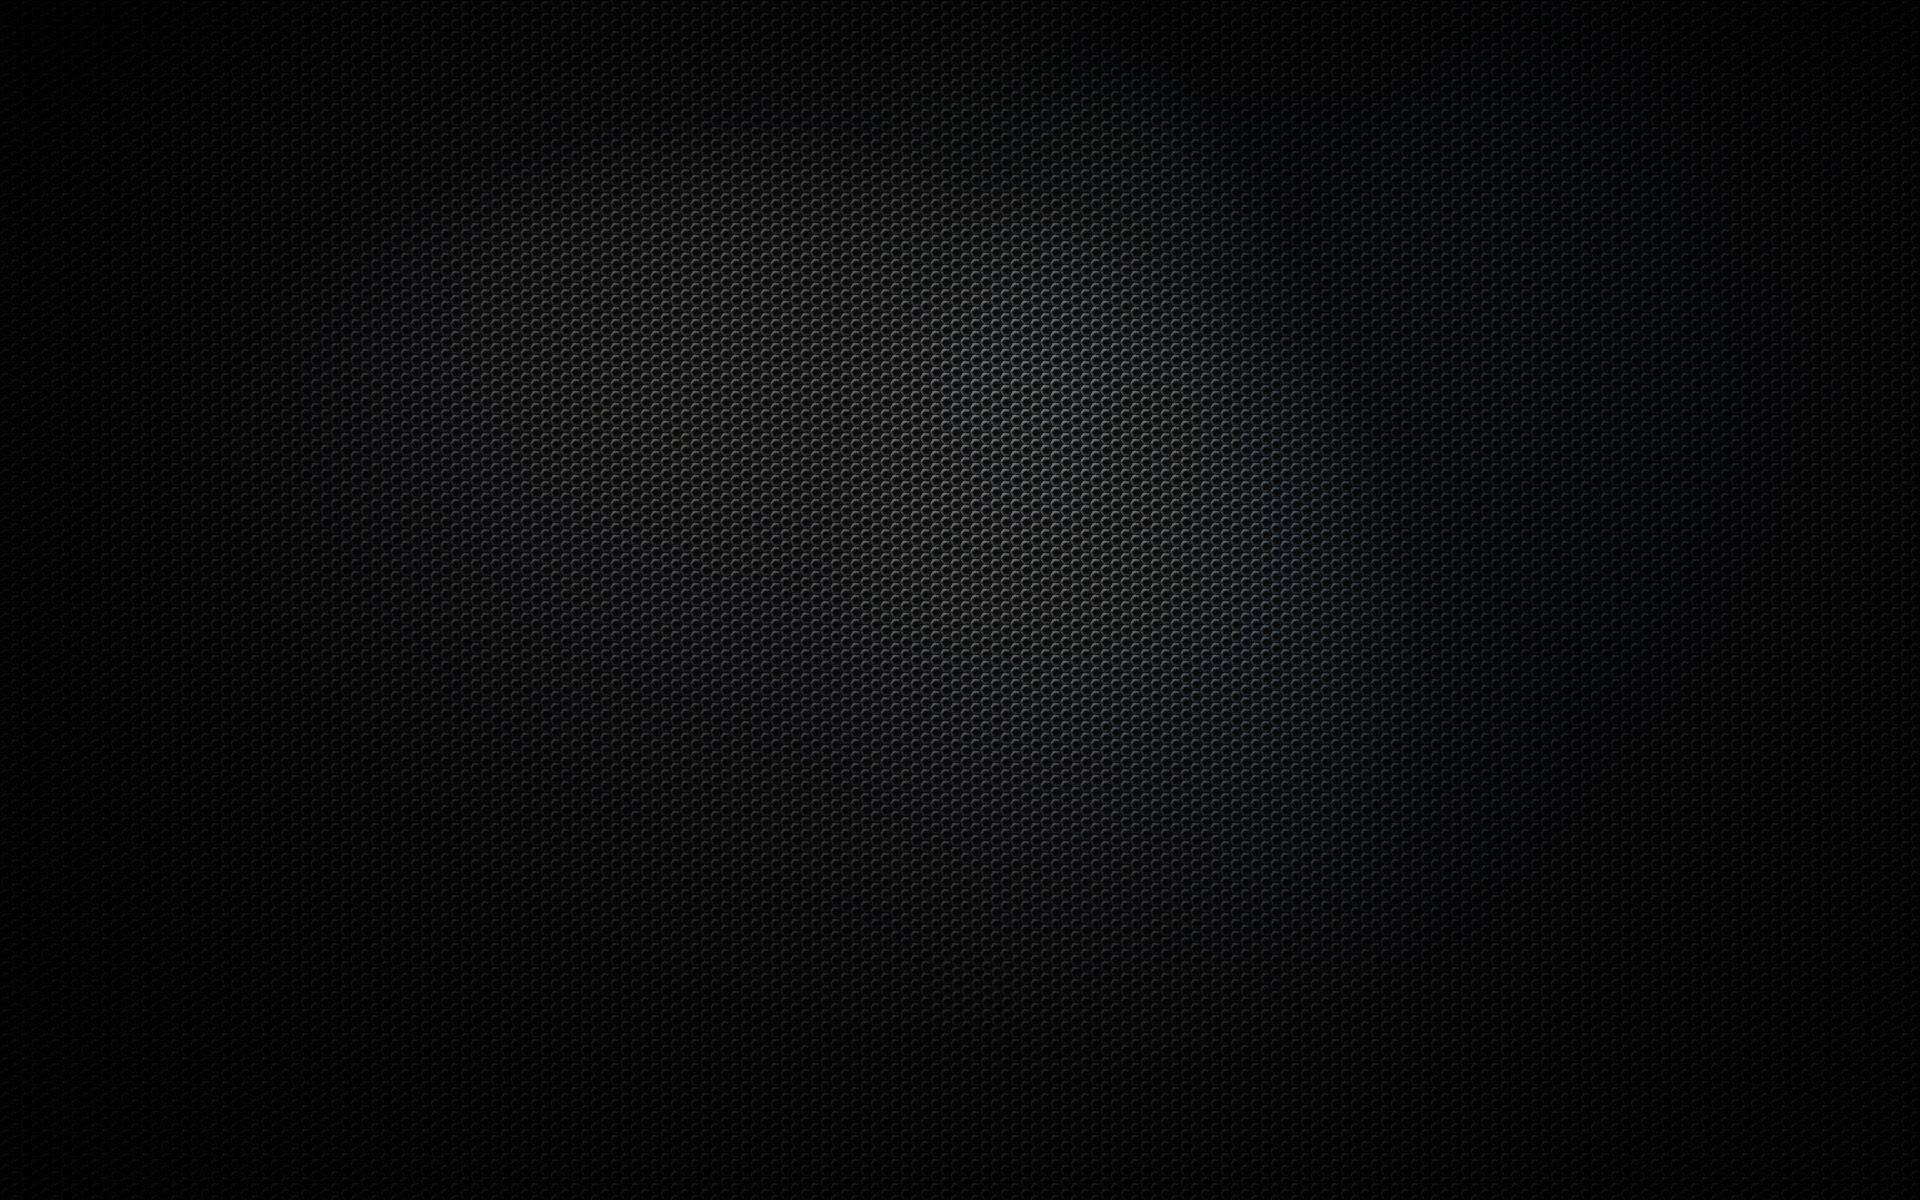 black abstract backgrounds designs